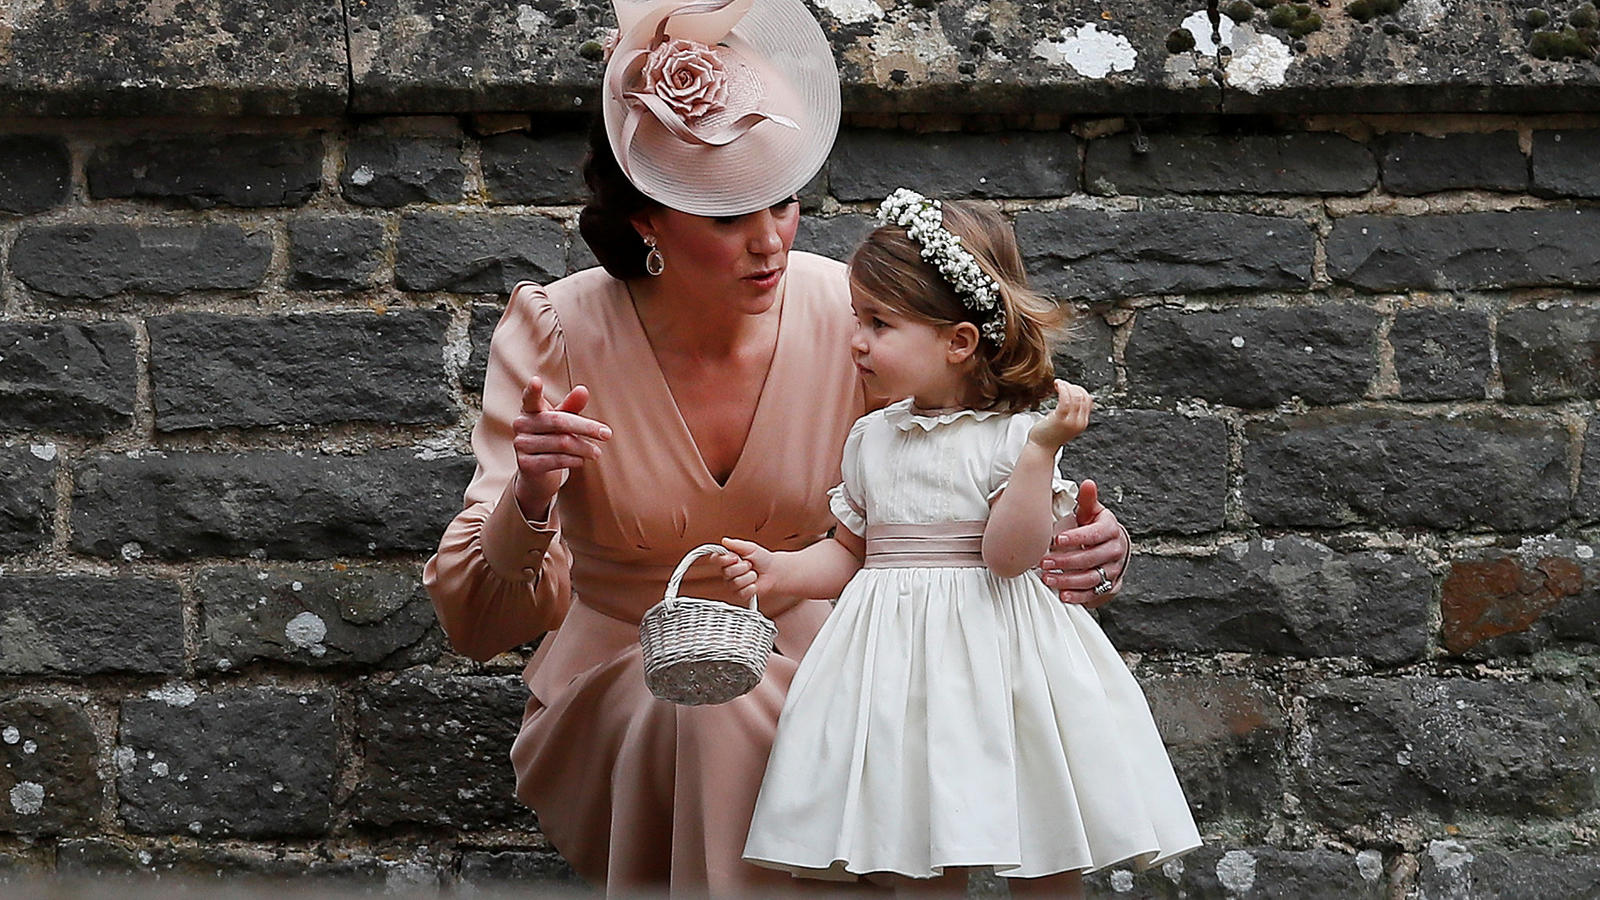 Britain's Catherine, Duchess of Cambridge stands with her daughter Princess Charlotte, a bridesmaid, following the wedding of her sister Pippa Middleton to James Matthews at St Mark's Church in Englefield, west of London, on May 20, 2017.    REUTERS/